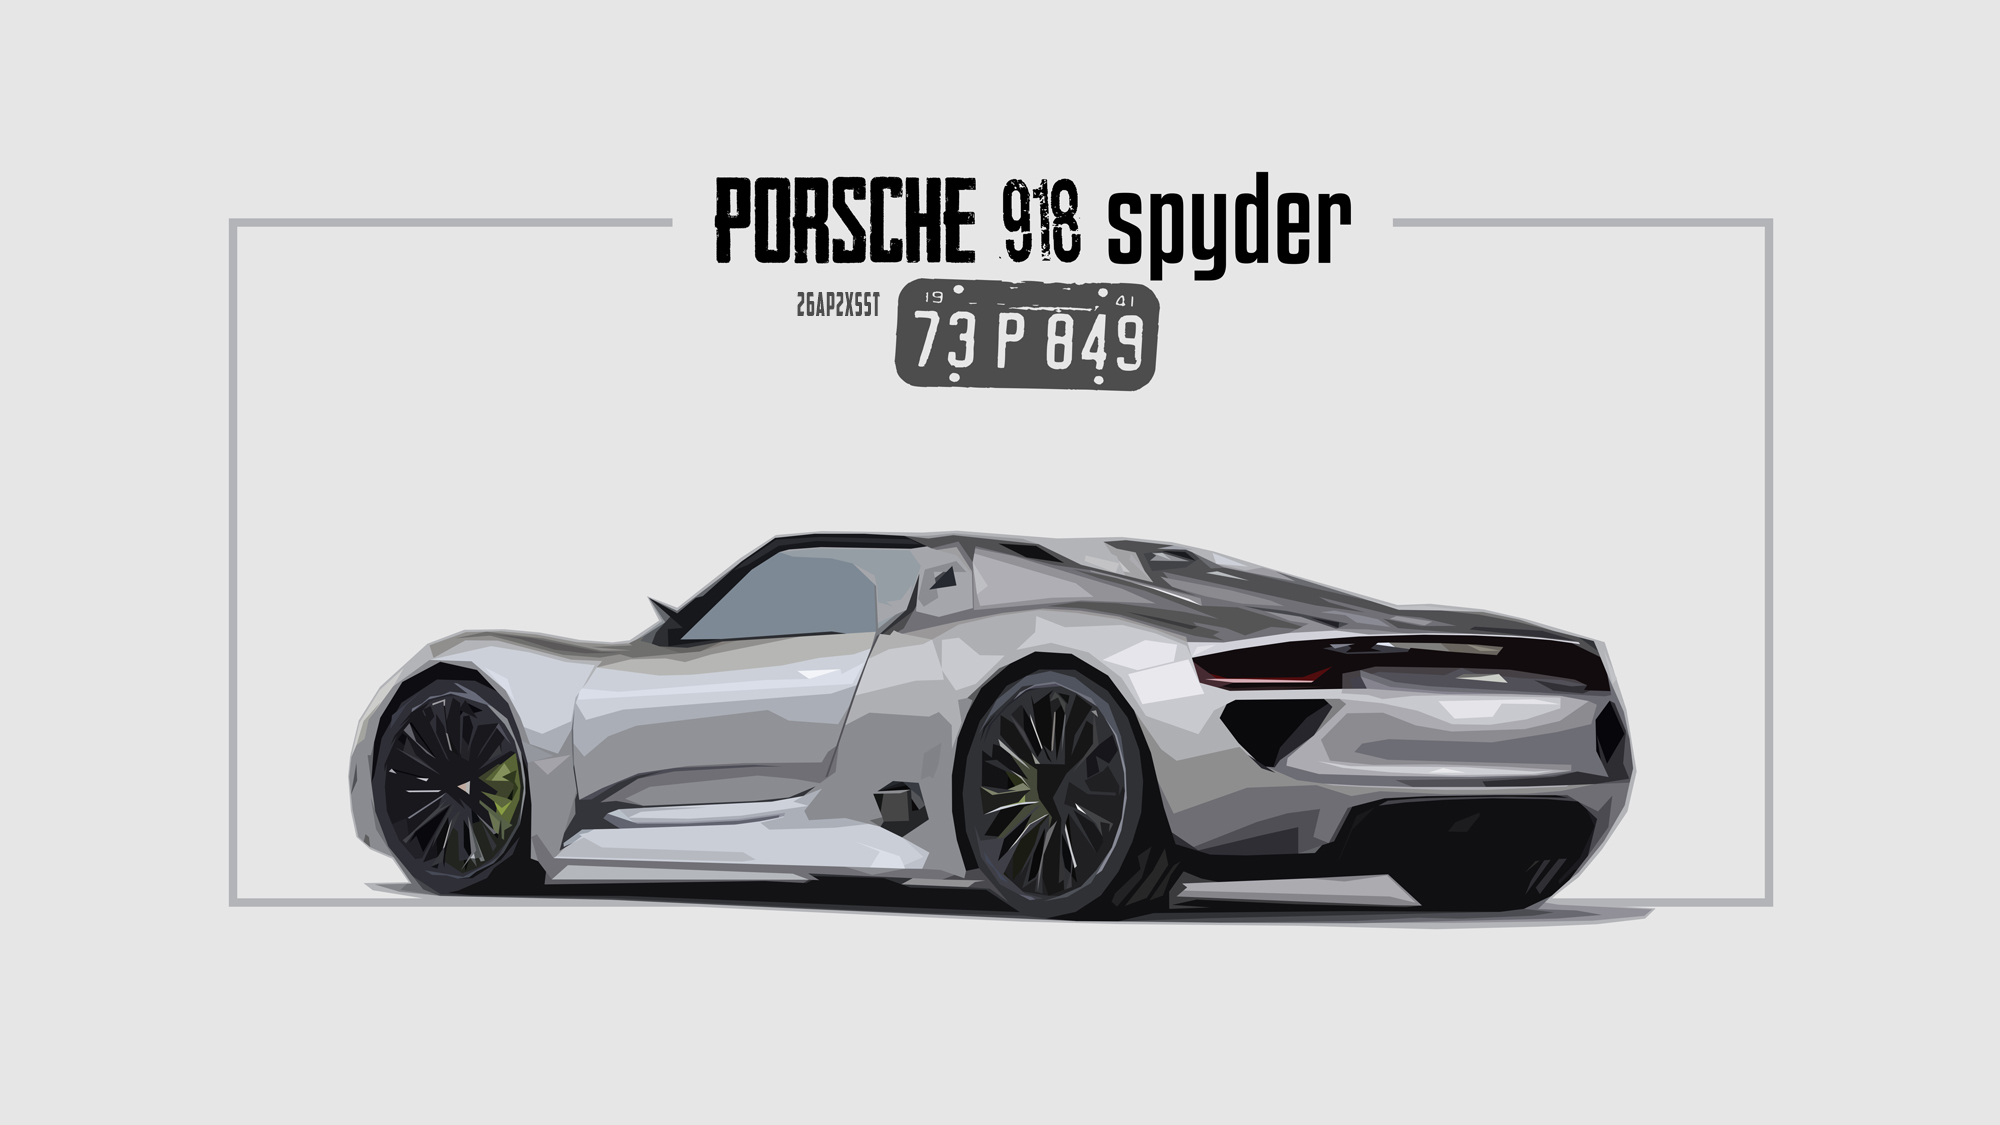 porsche 918 spyder black wallpaper. vehicles porsche 918 spyder car artistic black u0026 white sport wallpaper